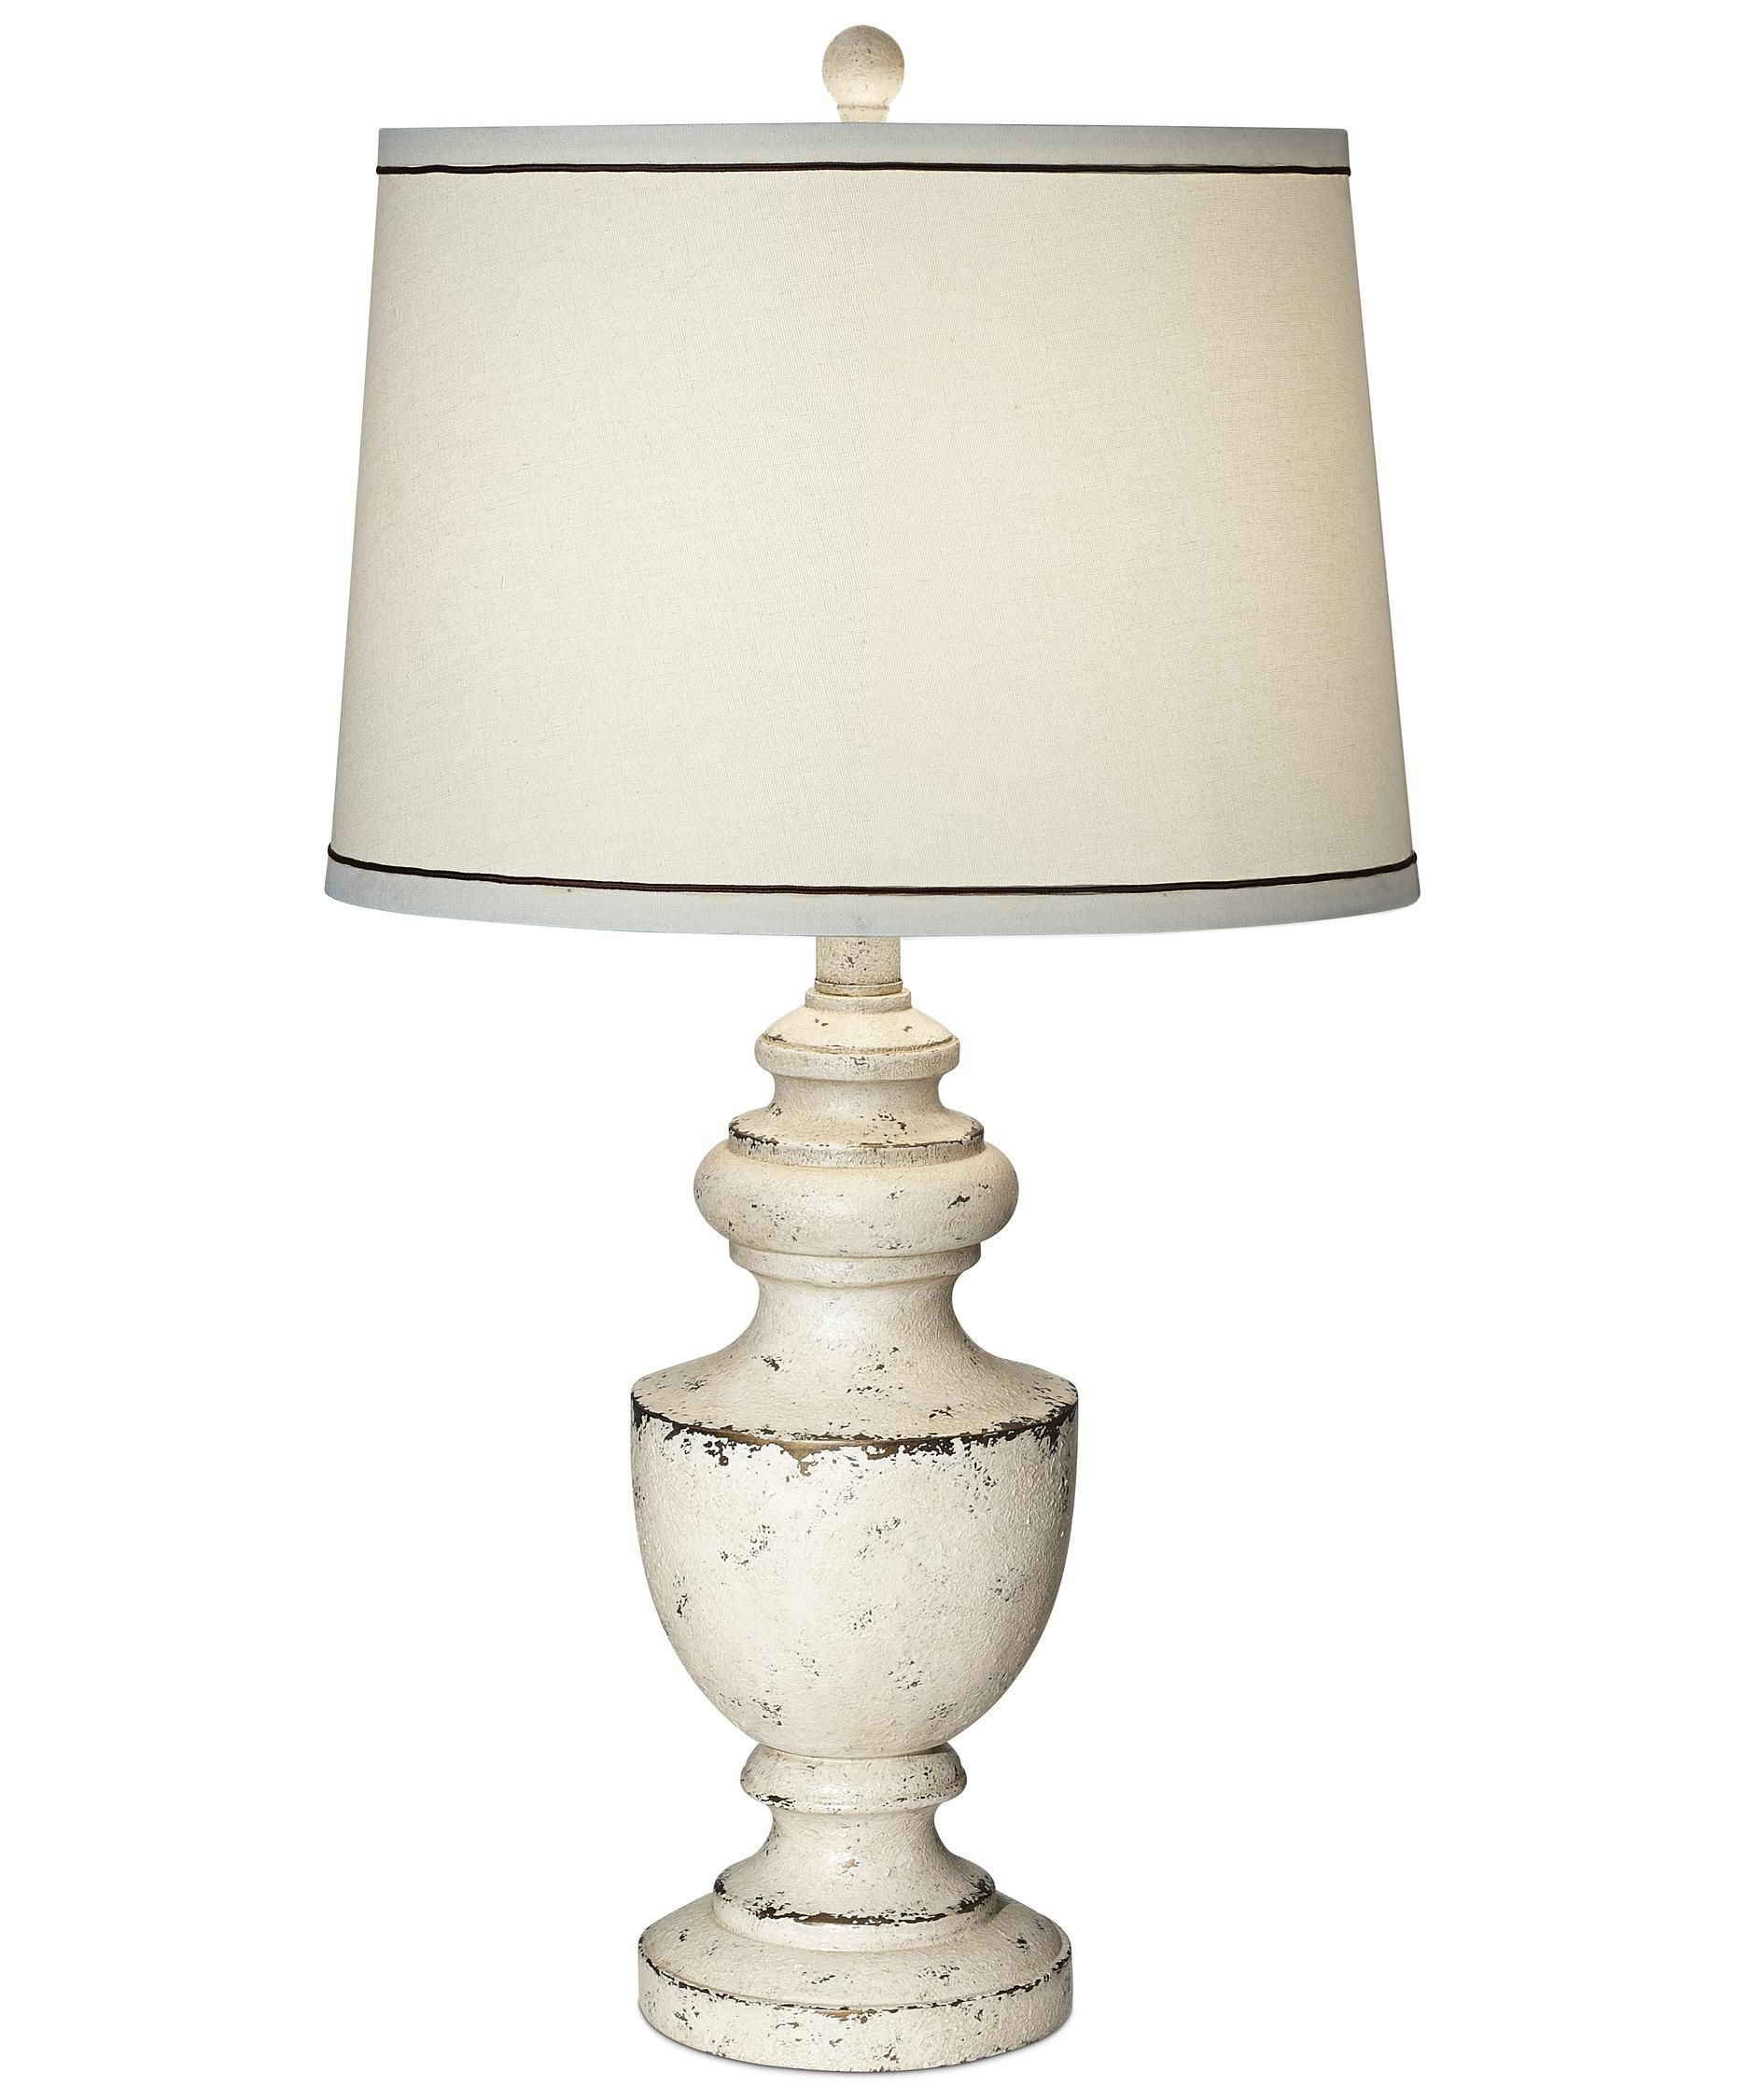 Kathy Ireland Home 87 6865 06 Kensington 28 Inch High Table Lamp